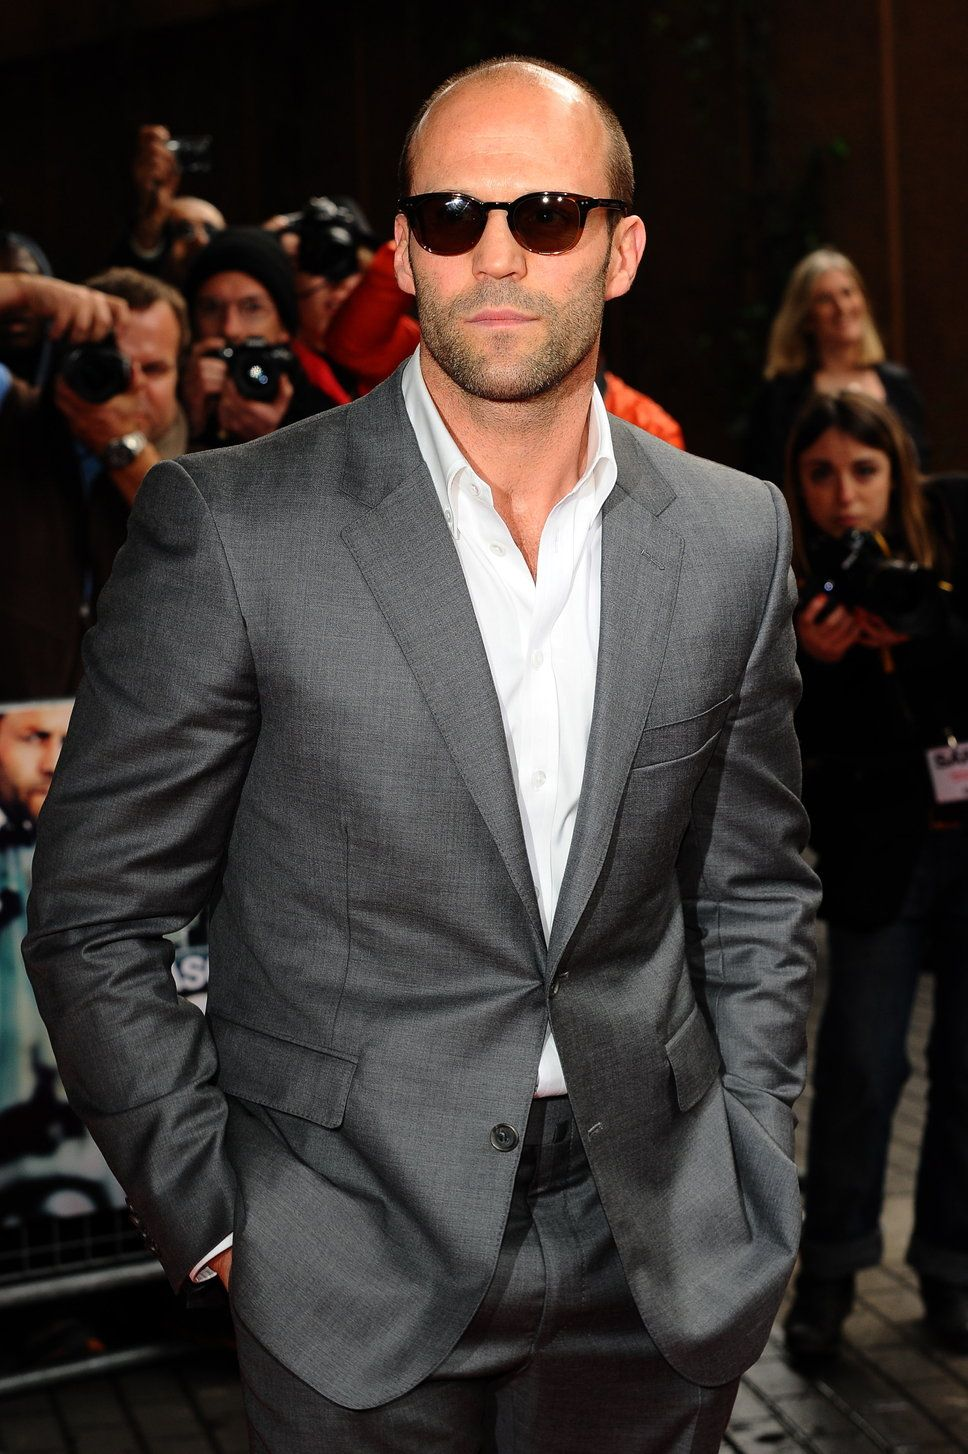 My choice for Mr. Christian Grey, although not typical since he is bald, is Mr. Jason Statham. HOT!! He exudes confidence in his walk, his attitude, his demeanor-just the whole package. Not sure if they should make Christian bald, or give Jason hair-neither seems right in my mind